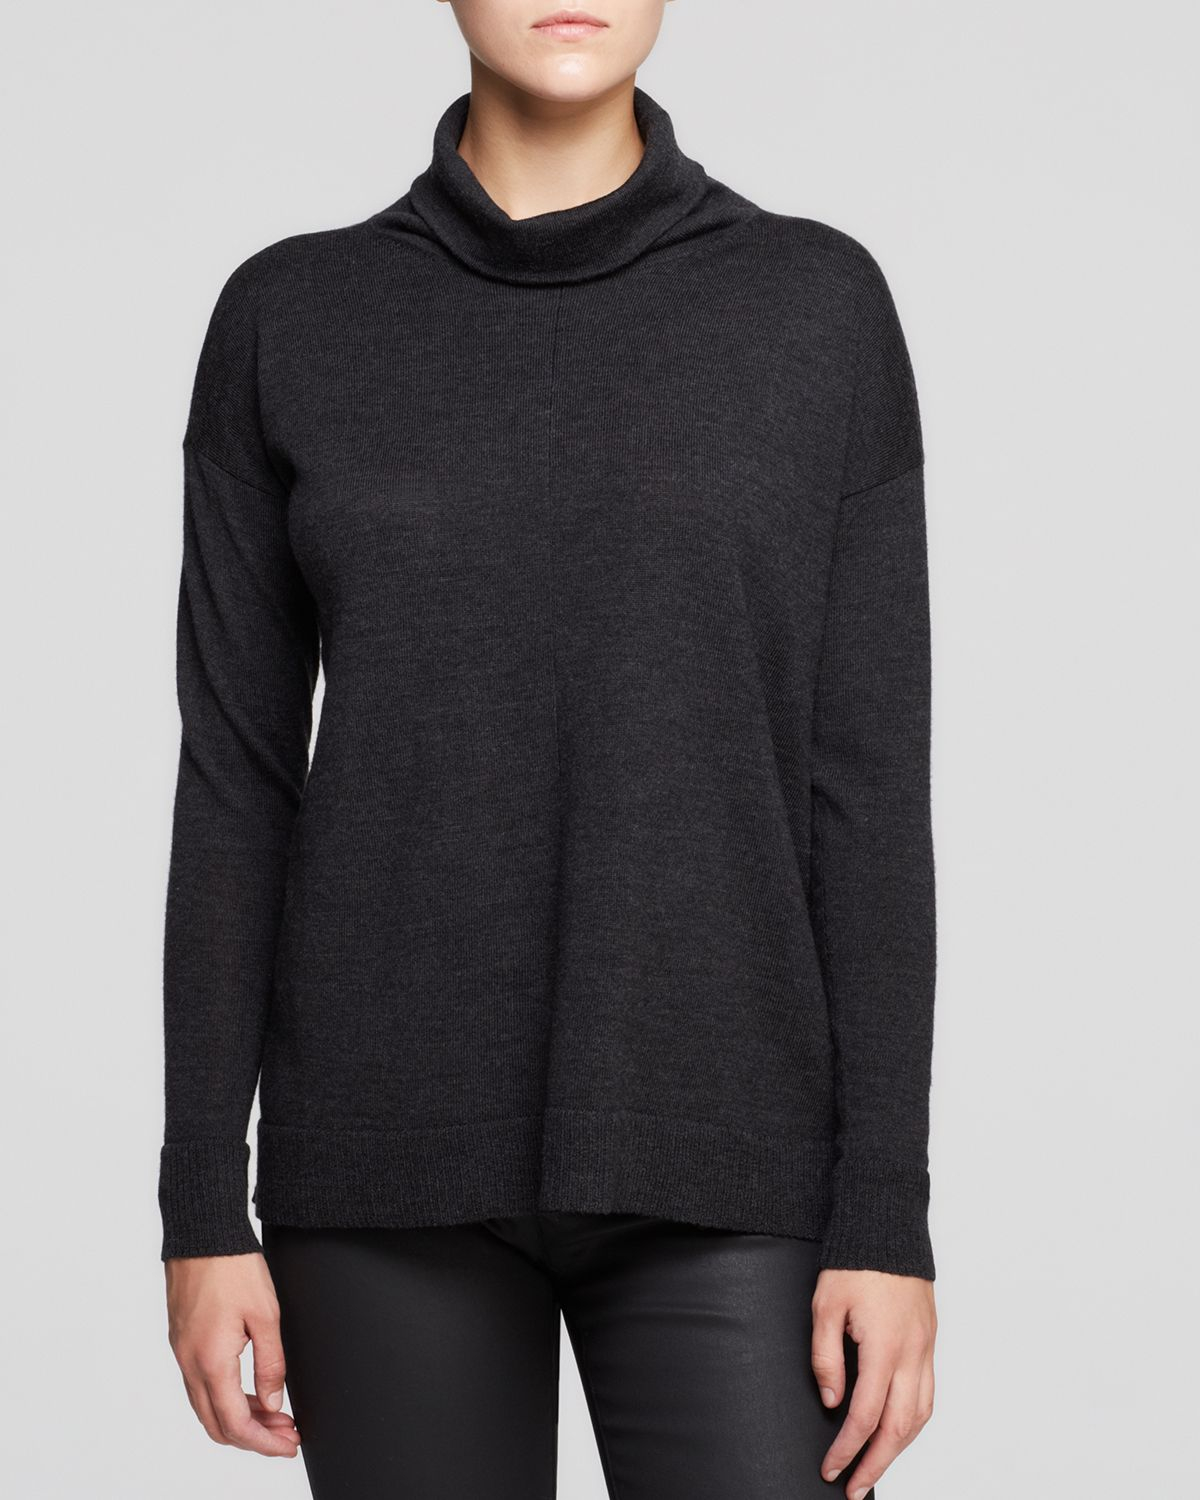 Eileen fisher Merino Wool Turtleneck Sweater in Gray | Lyst